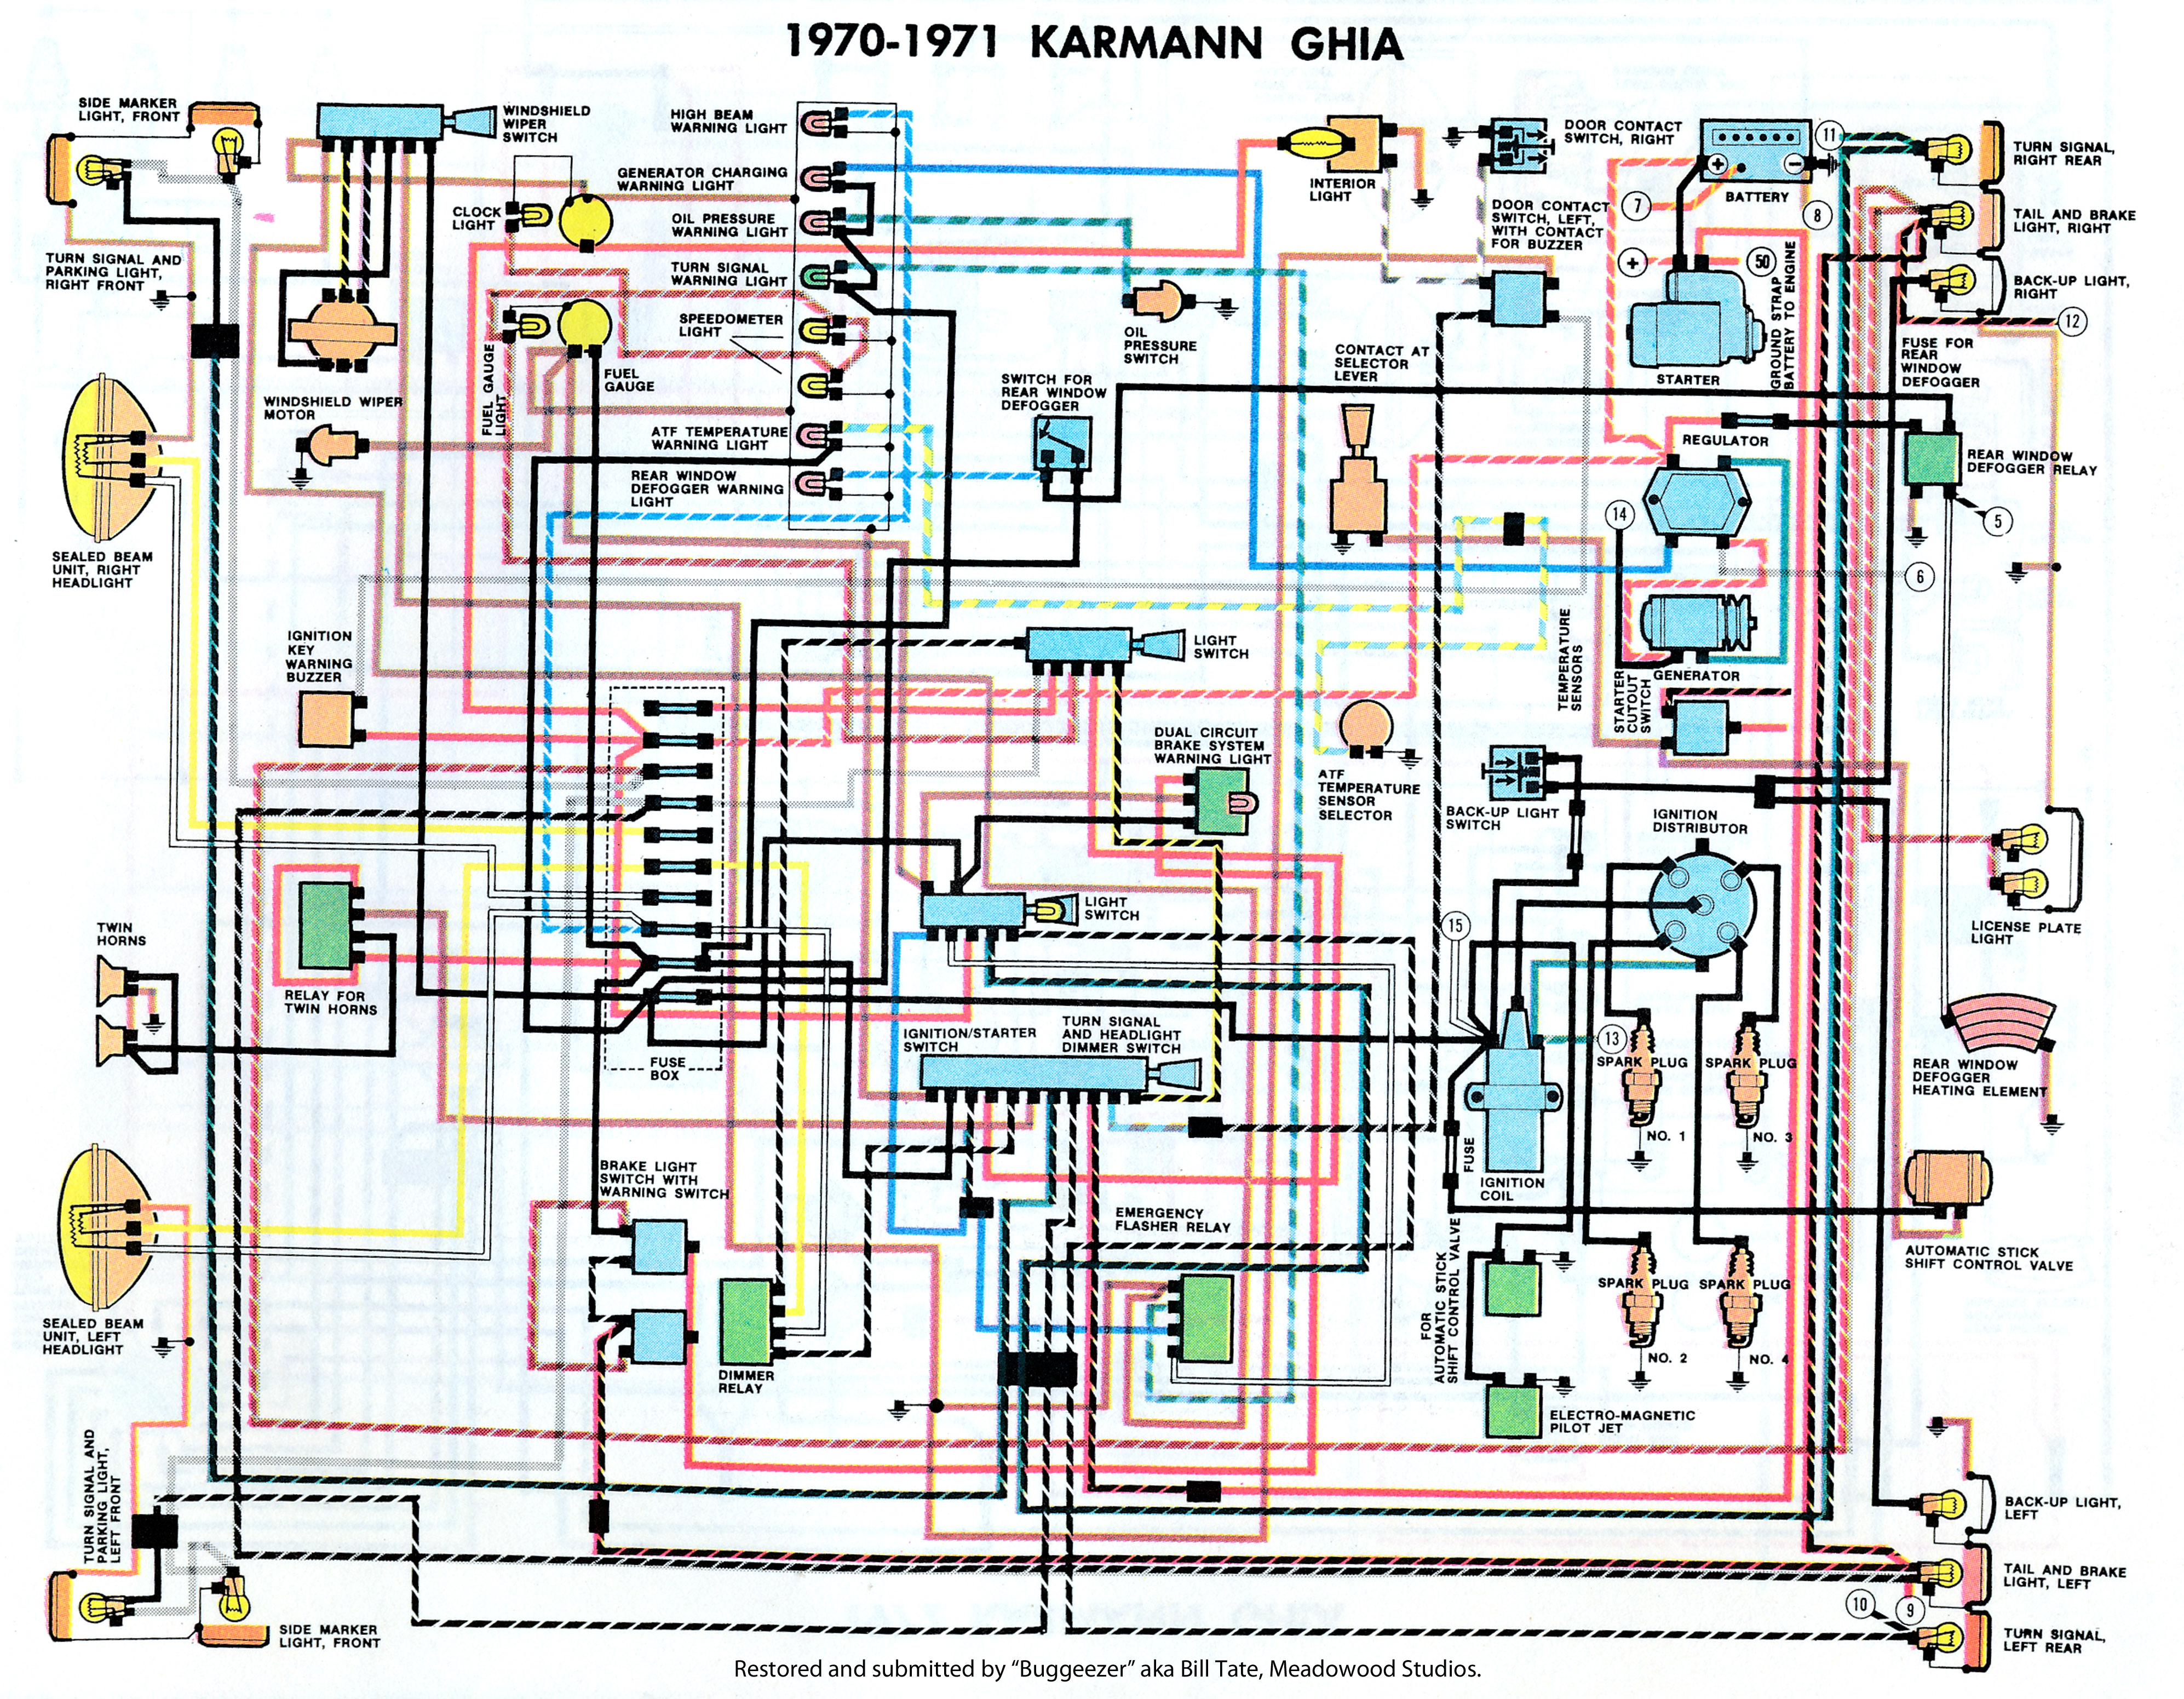 Ghia_1970 71_Clymers thesamba com karmann ghia wiring diagrams International Tractor Wiring Diagram at gsmx.co